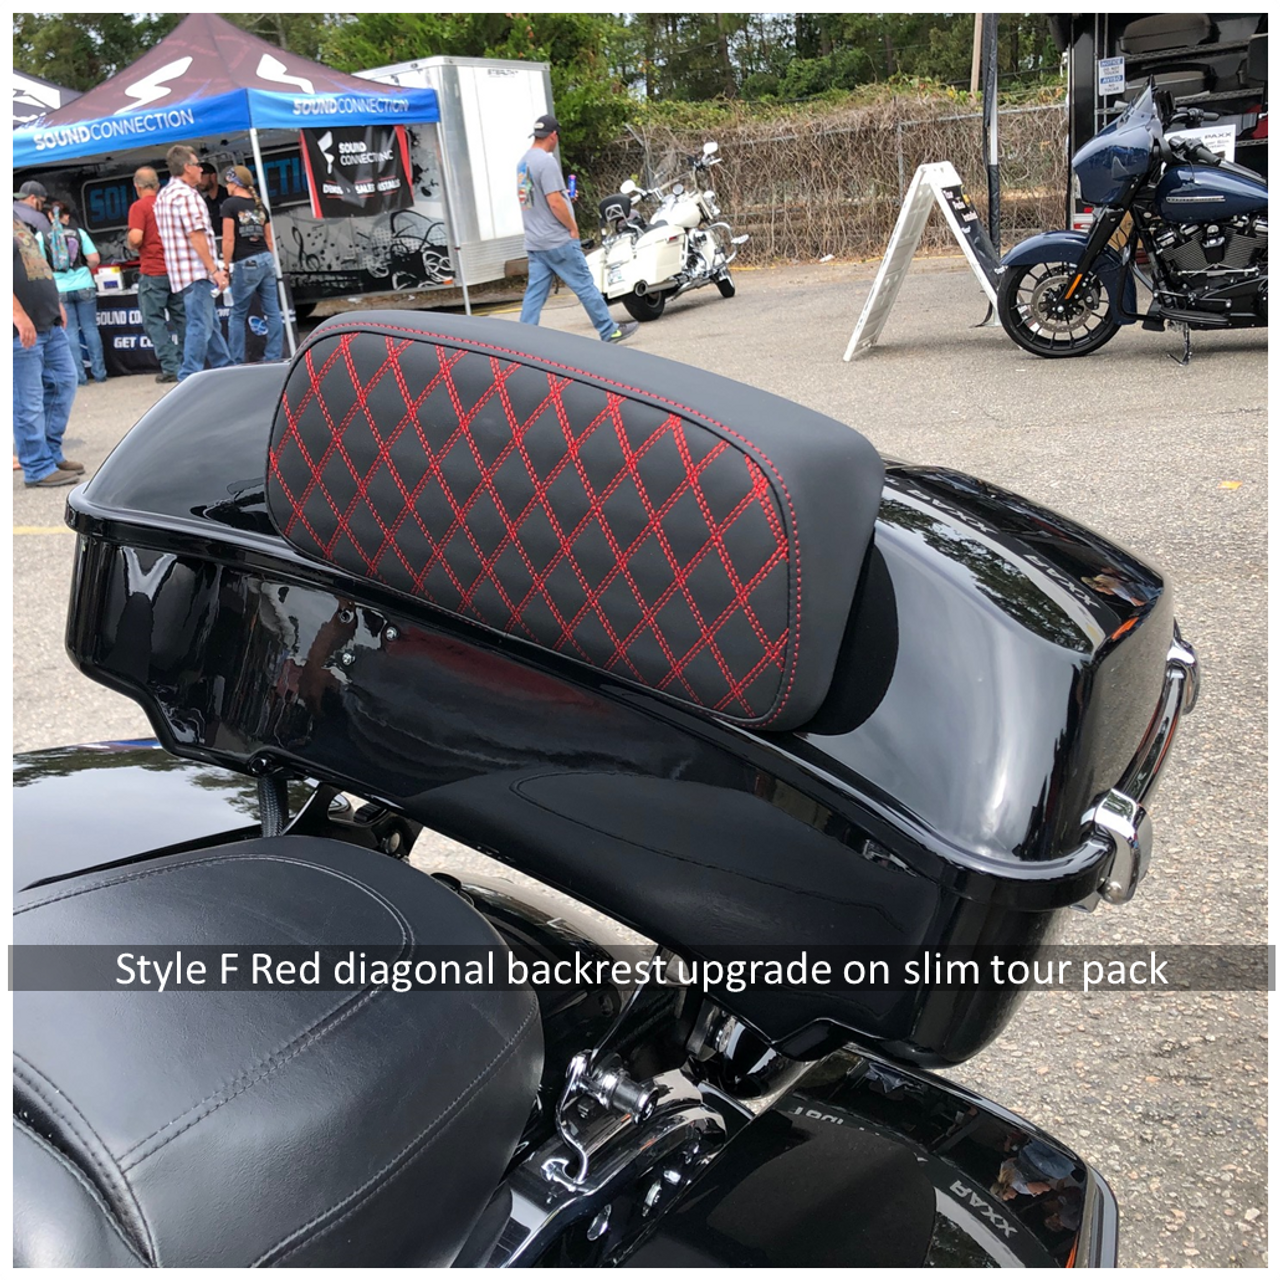 Style F Red diagonal backrest upgrade on Slim Tour Pack